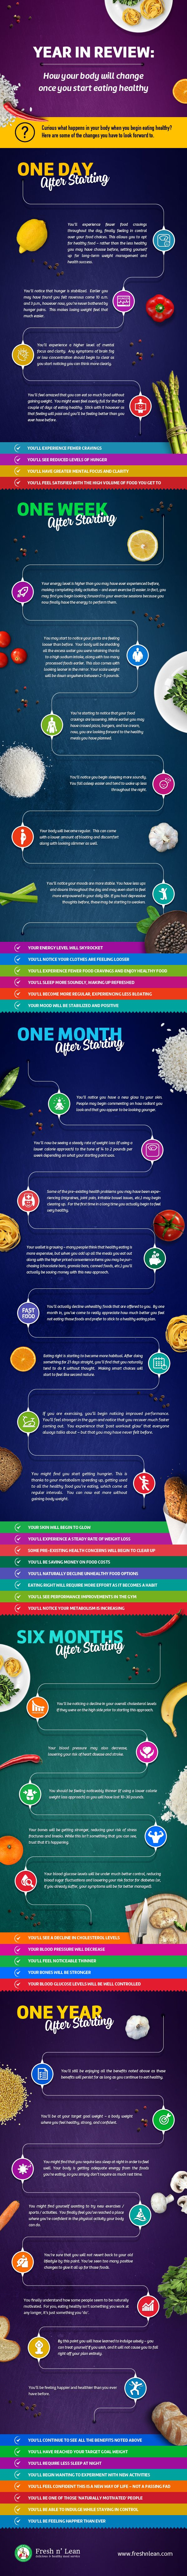 How Your Body Will Change After Eating Healthy #infographic